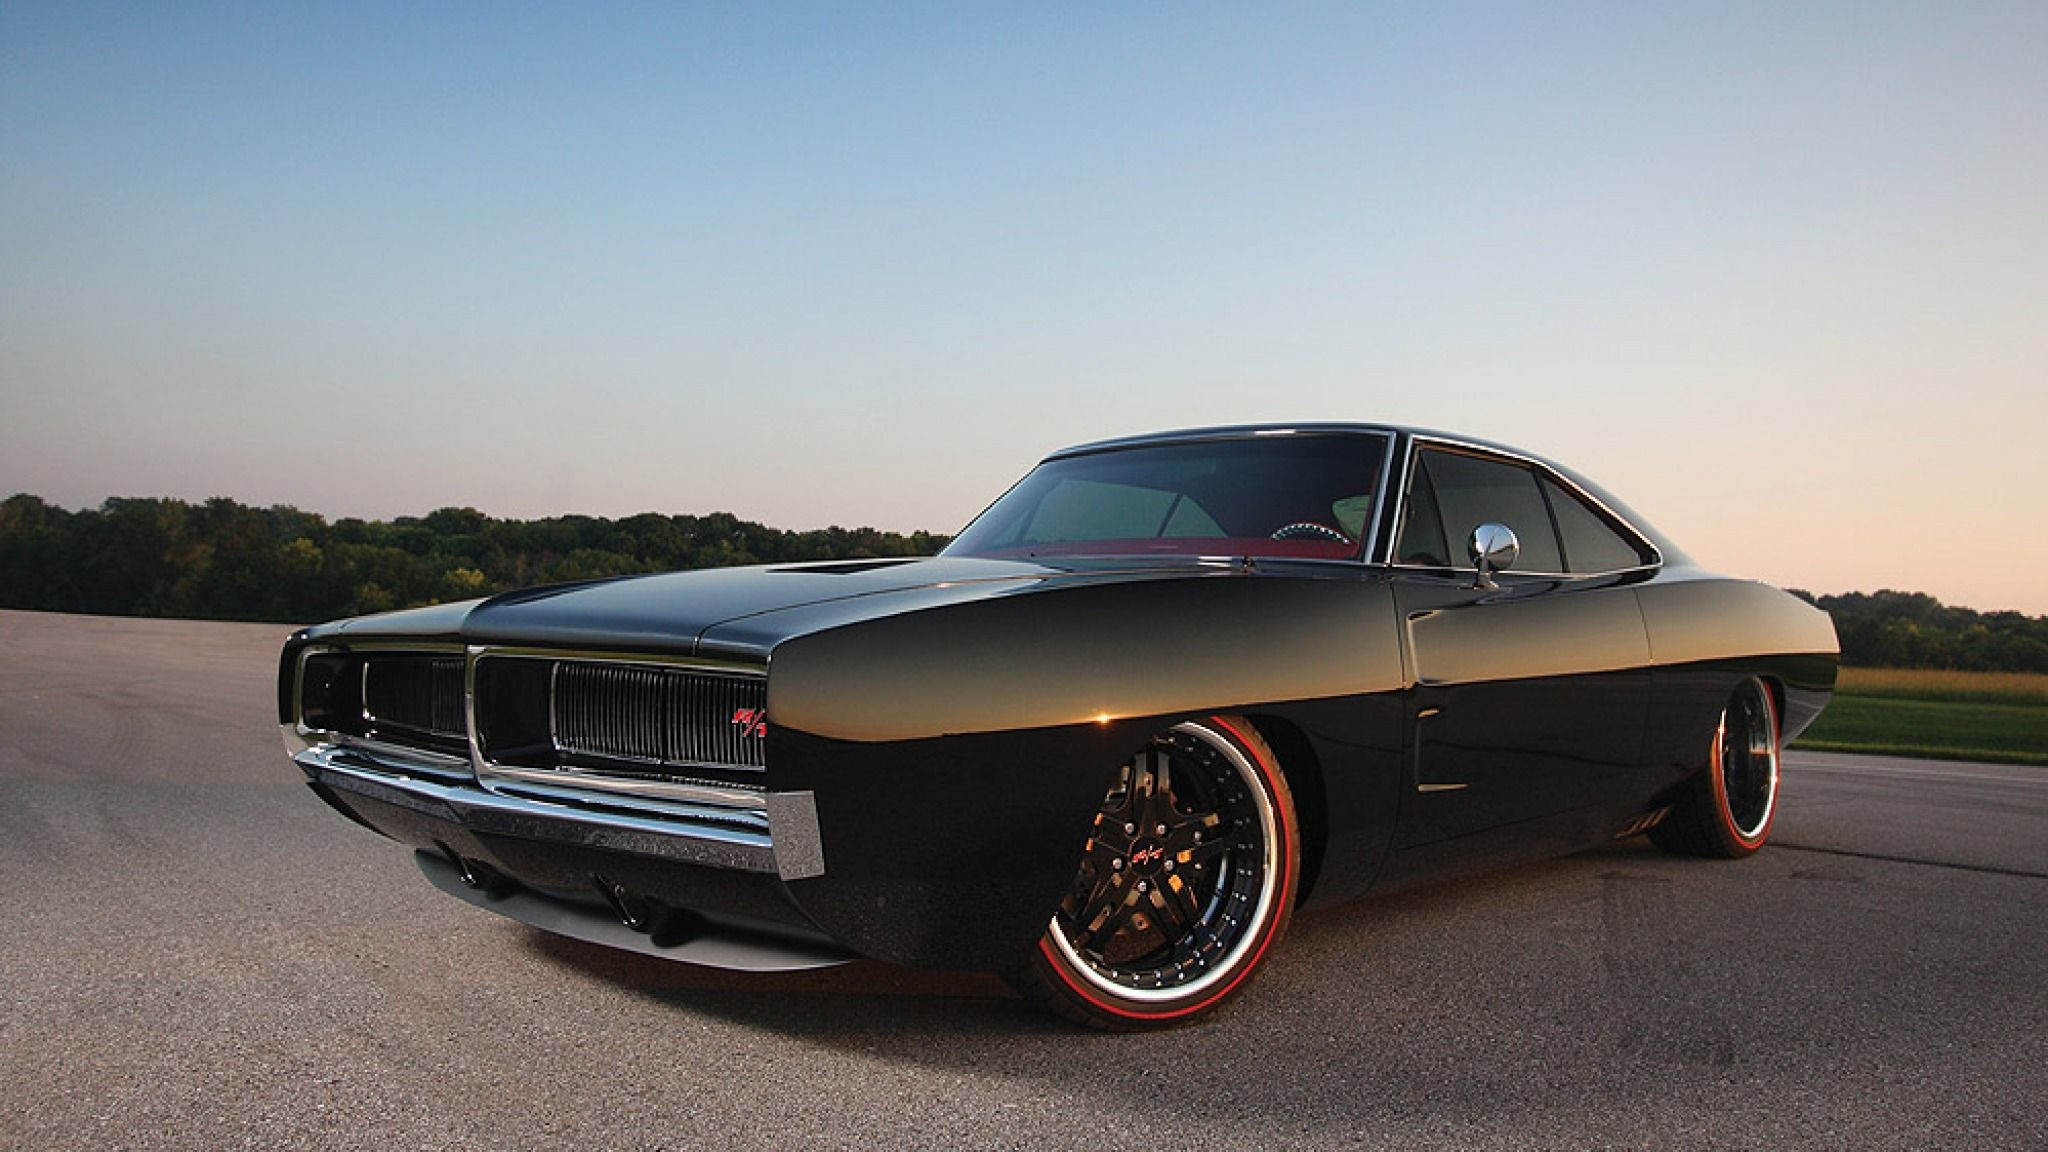 Dodge Charger Wallpapers   HD Wallpapers   Pinterest   Dodge charger, Dodge  and Hd wallpaper